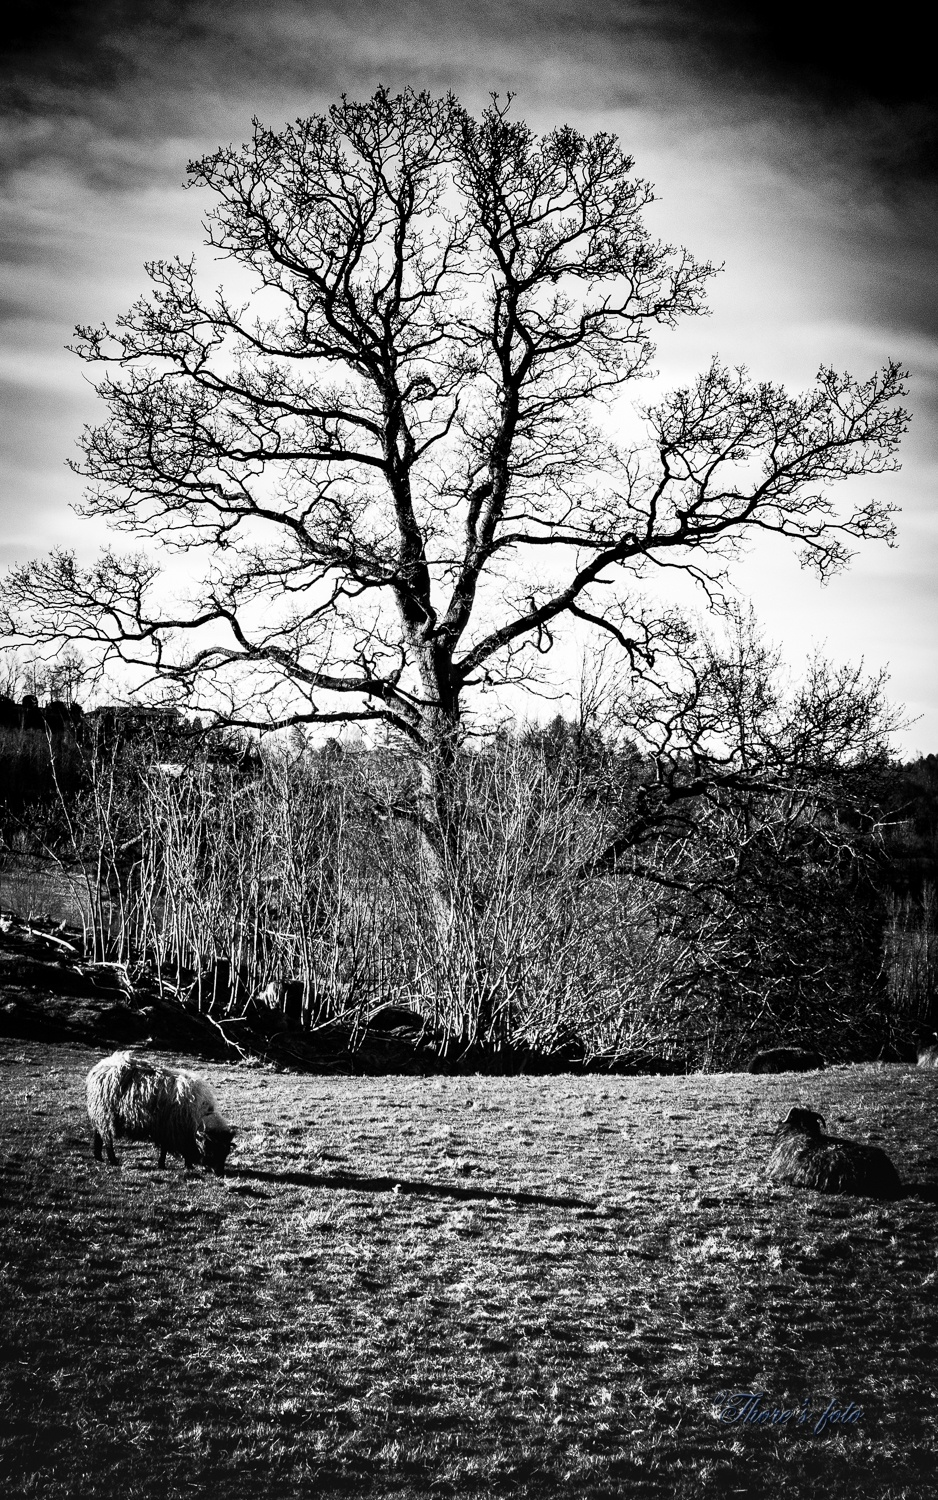 tree and sheep by Thore's photo